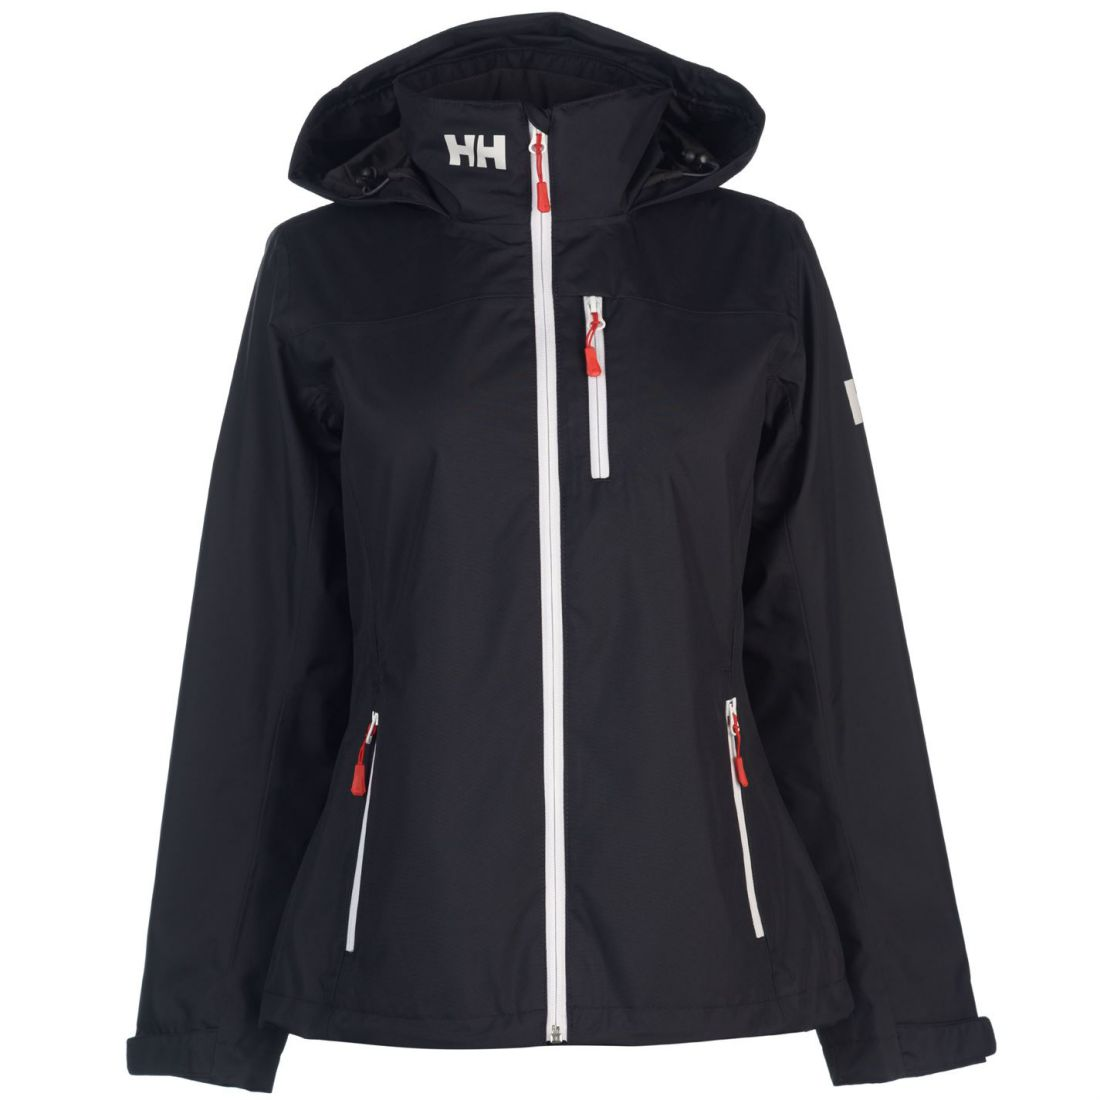 release date Super discount another chance Details about Helly Hansen Womens Crew Hooded Mid Jacket Waterproof Coat  Top Zip Full Warm